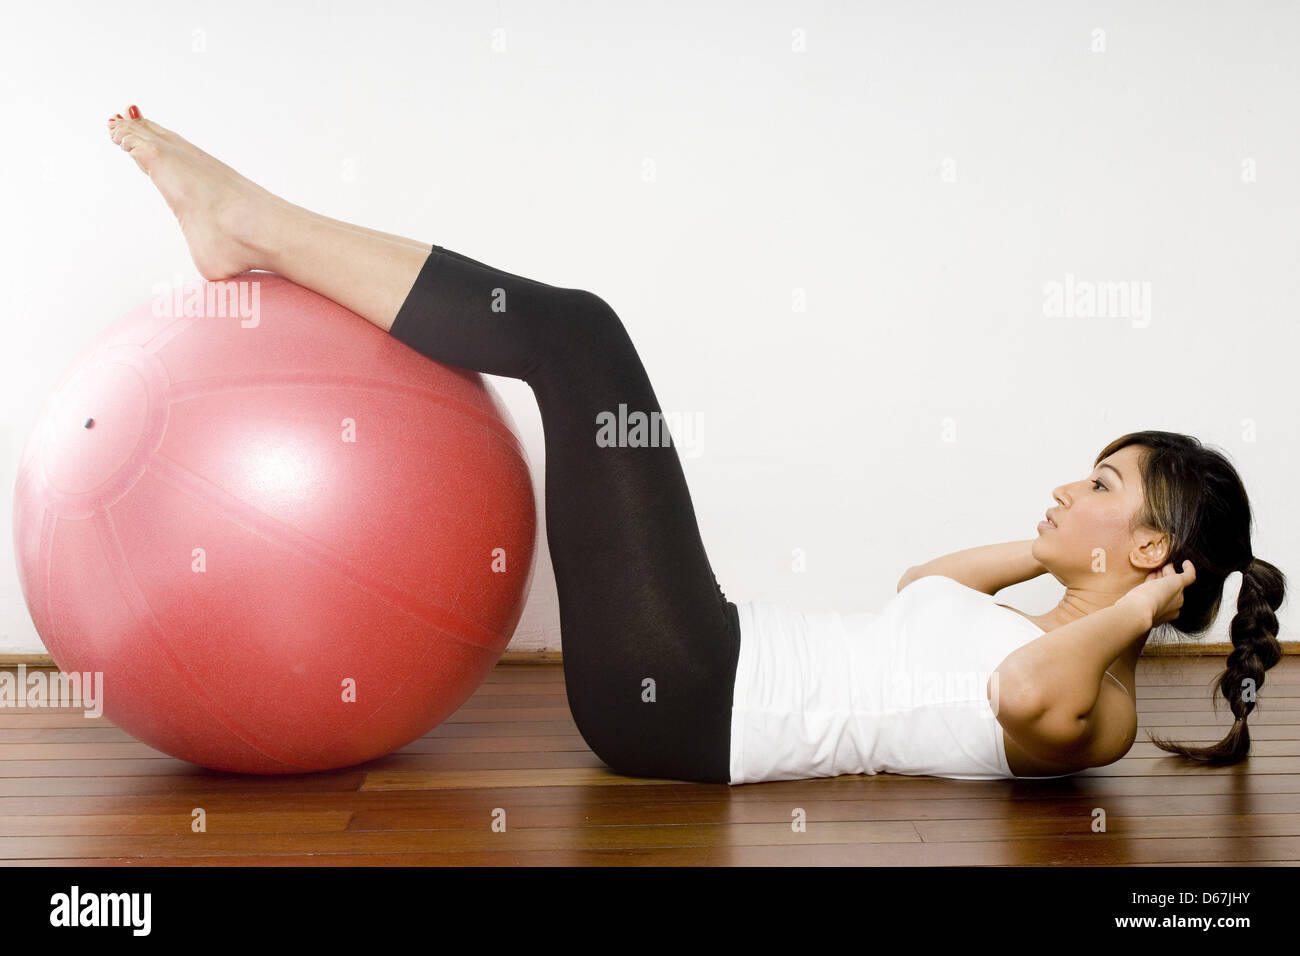 physiotherapy,sit-ups,abdominal exercise - Stock Image